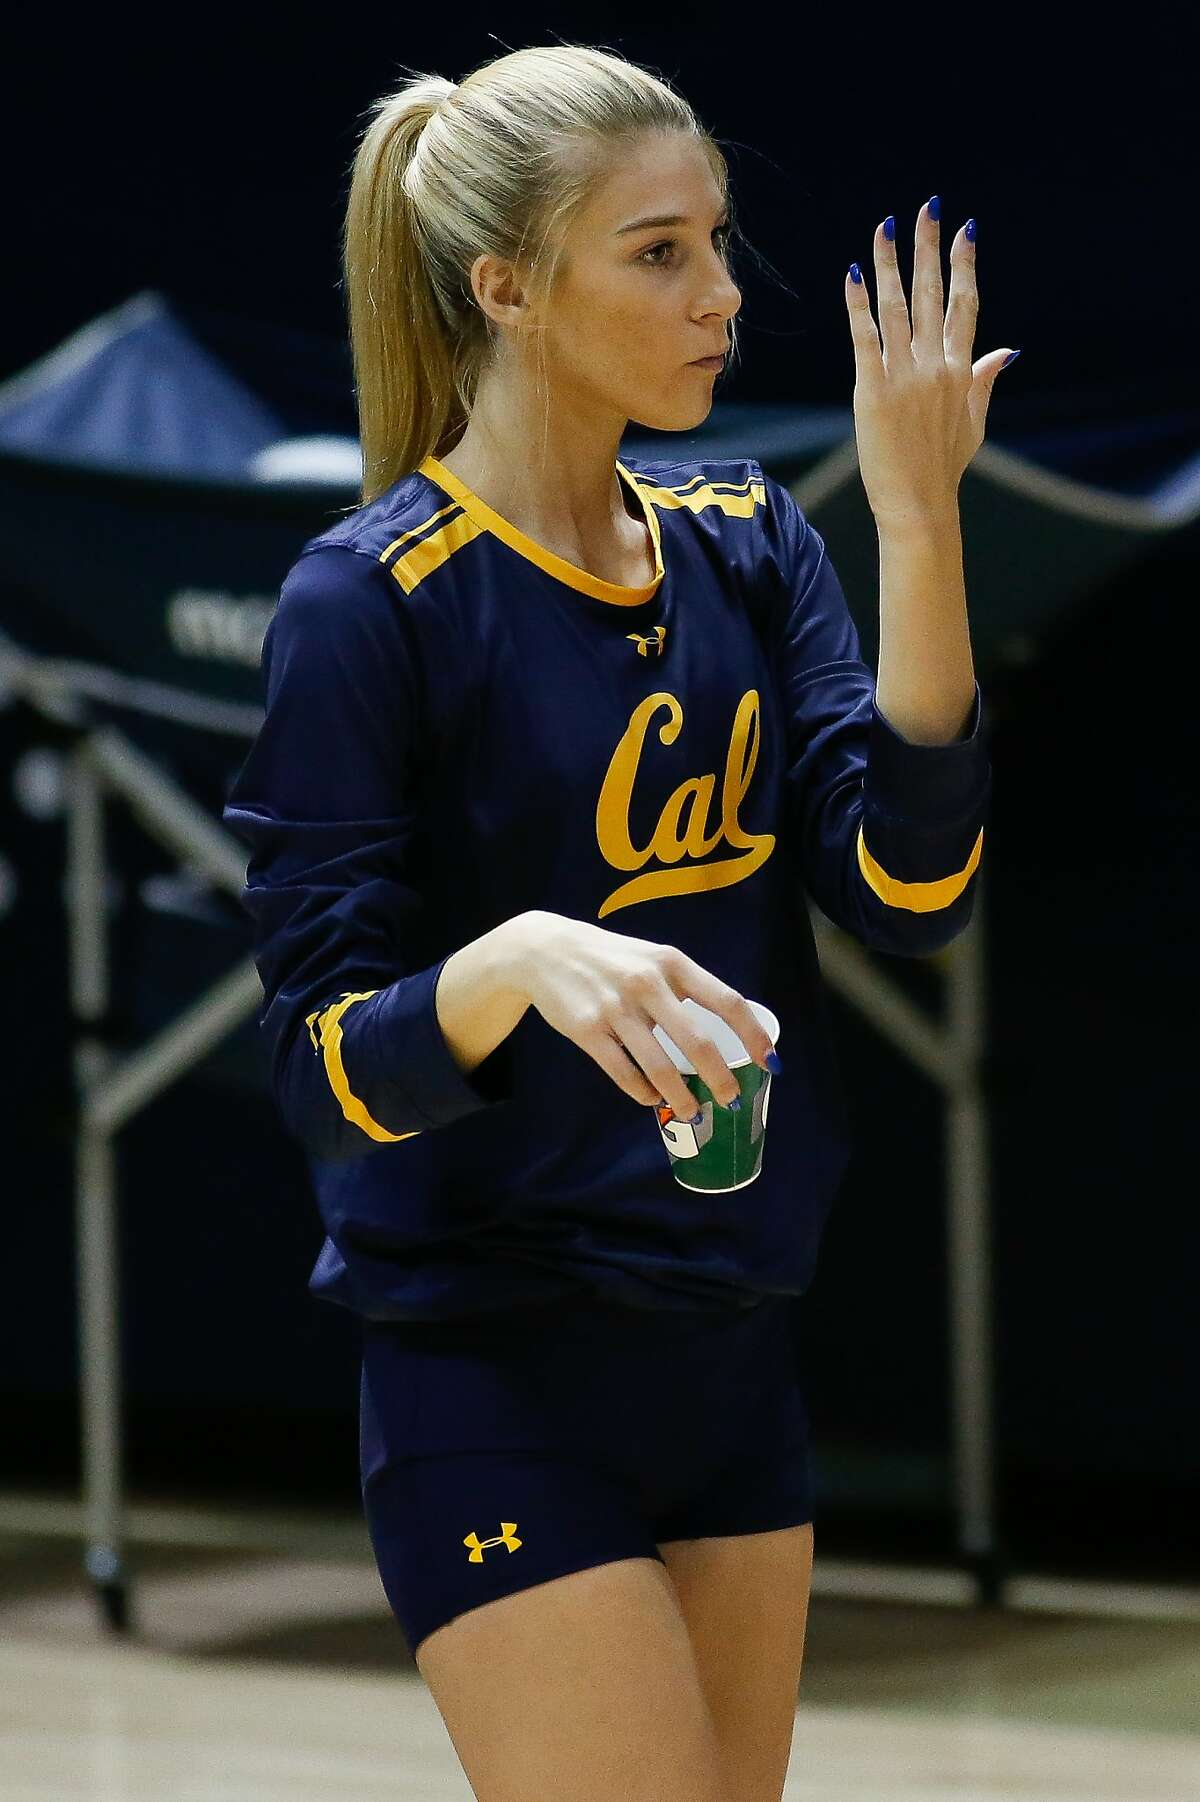 Cal Volleyball Middle Blocker Savannah Rennie (16) looks on during a match against UC Irvine at Haas Pavilion, Berkeley, California on August 25, 2017:.